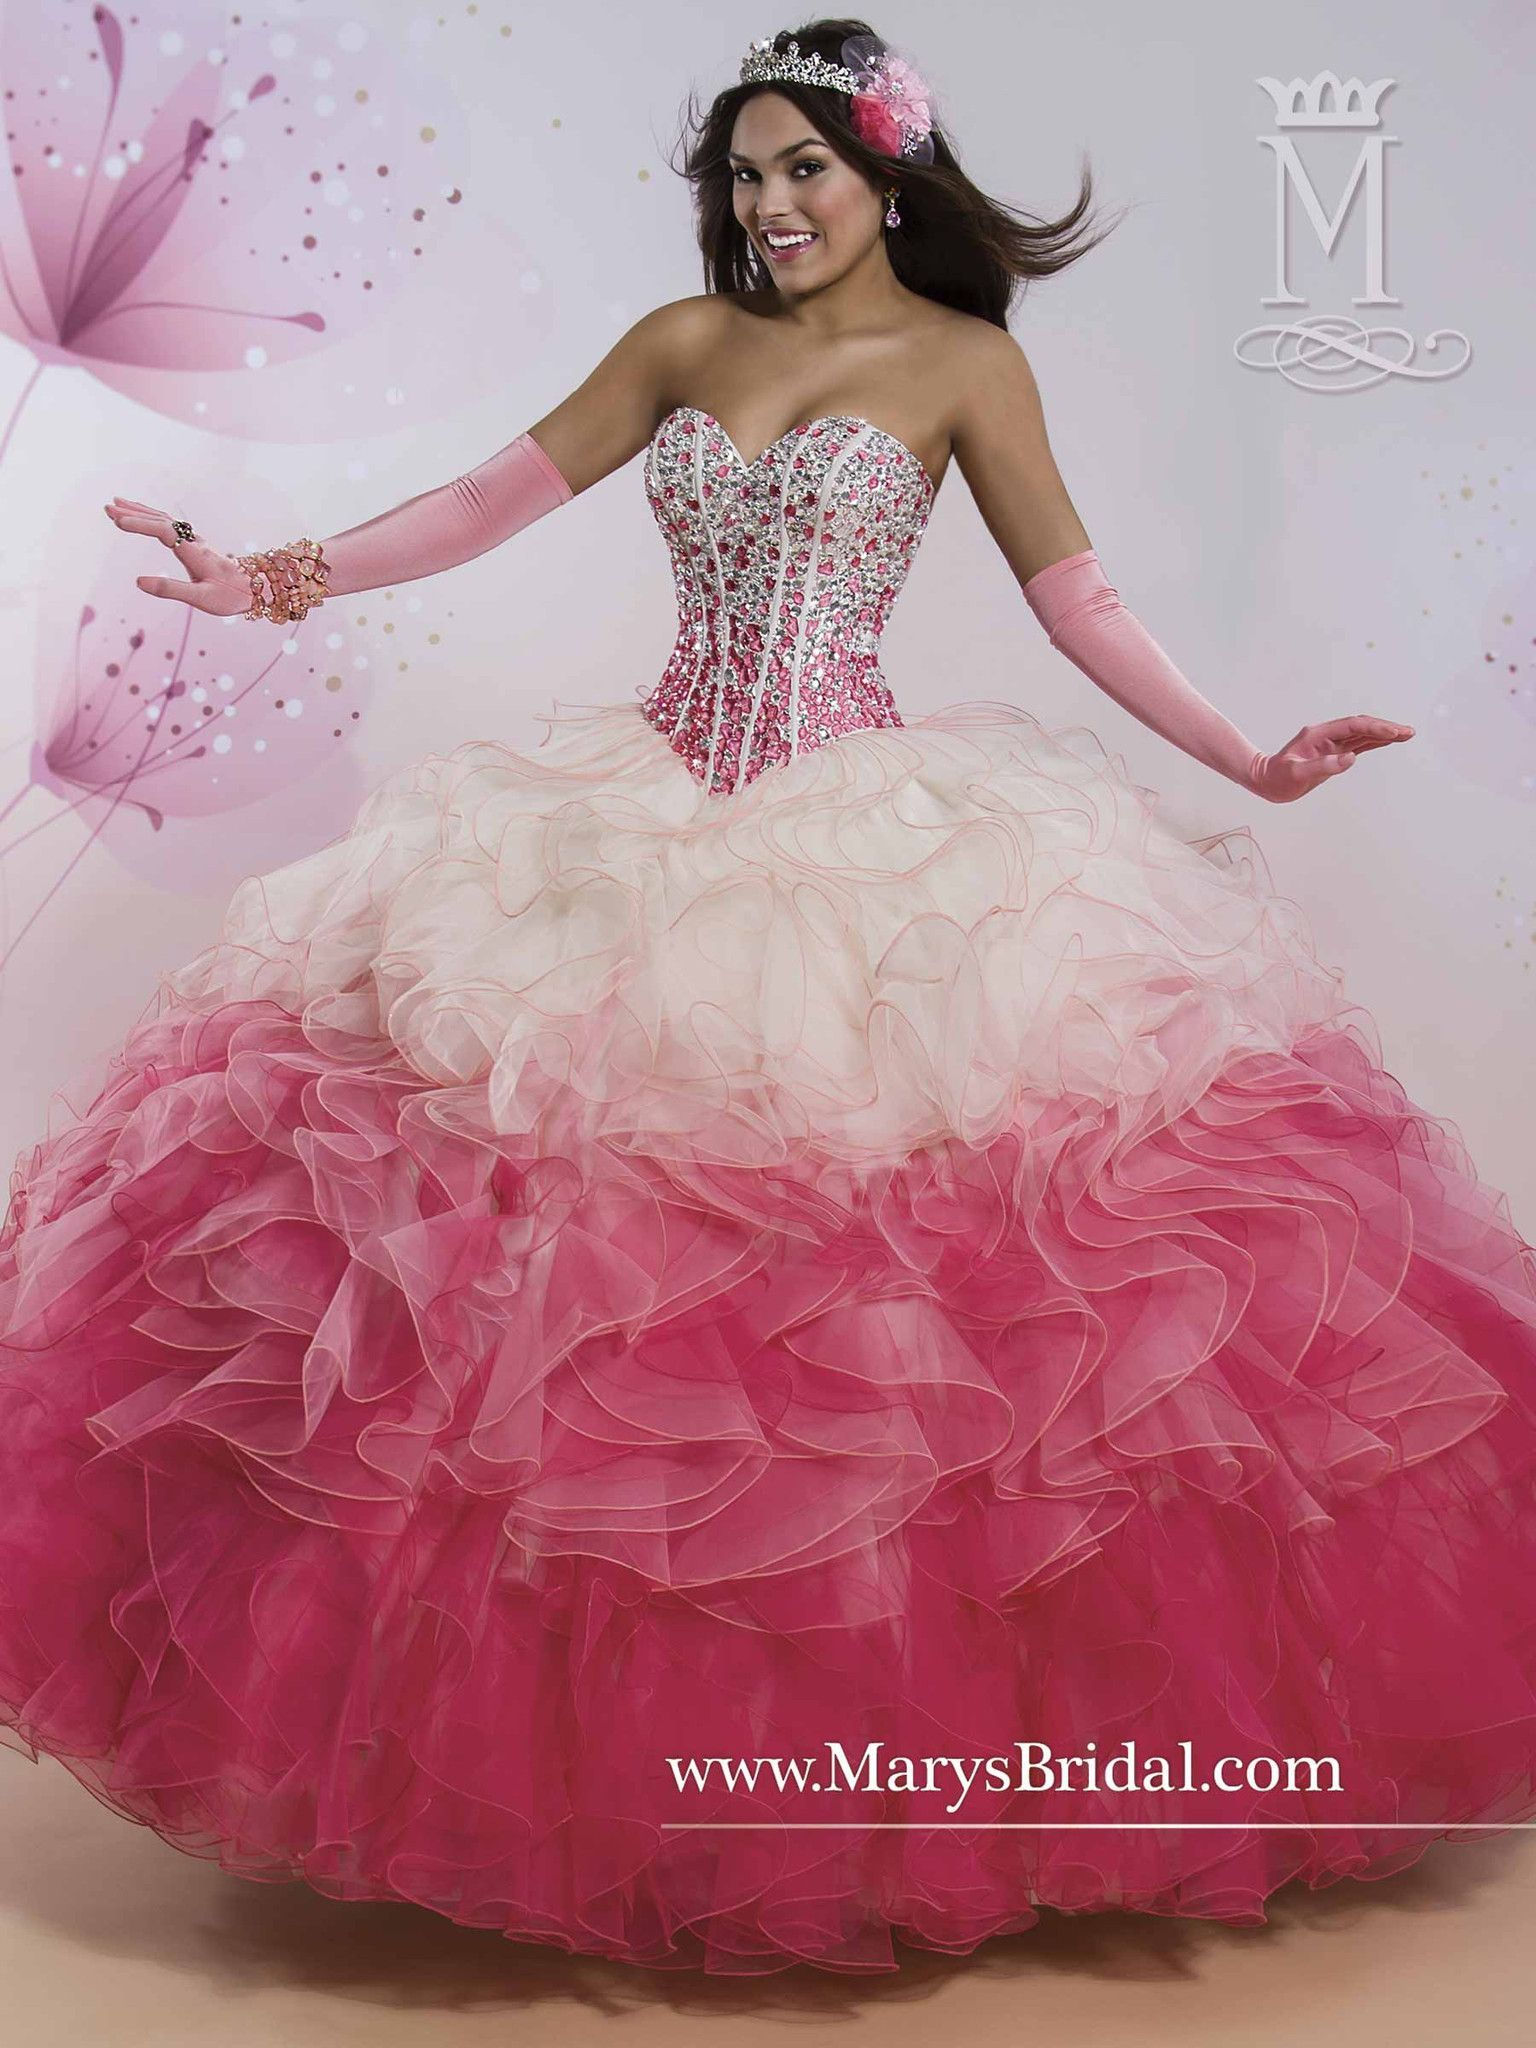 Mary\'s Bridal Princess Collection Quinceanera Dress Style 4Q403 ...